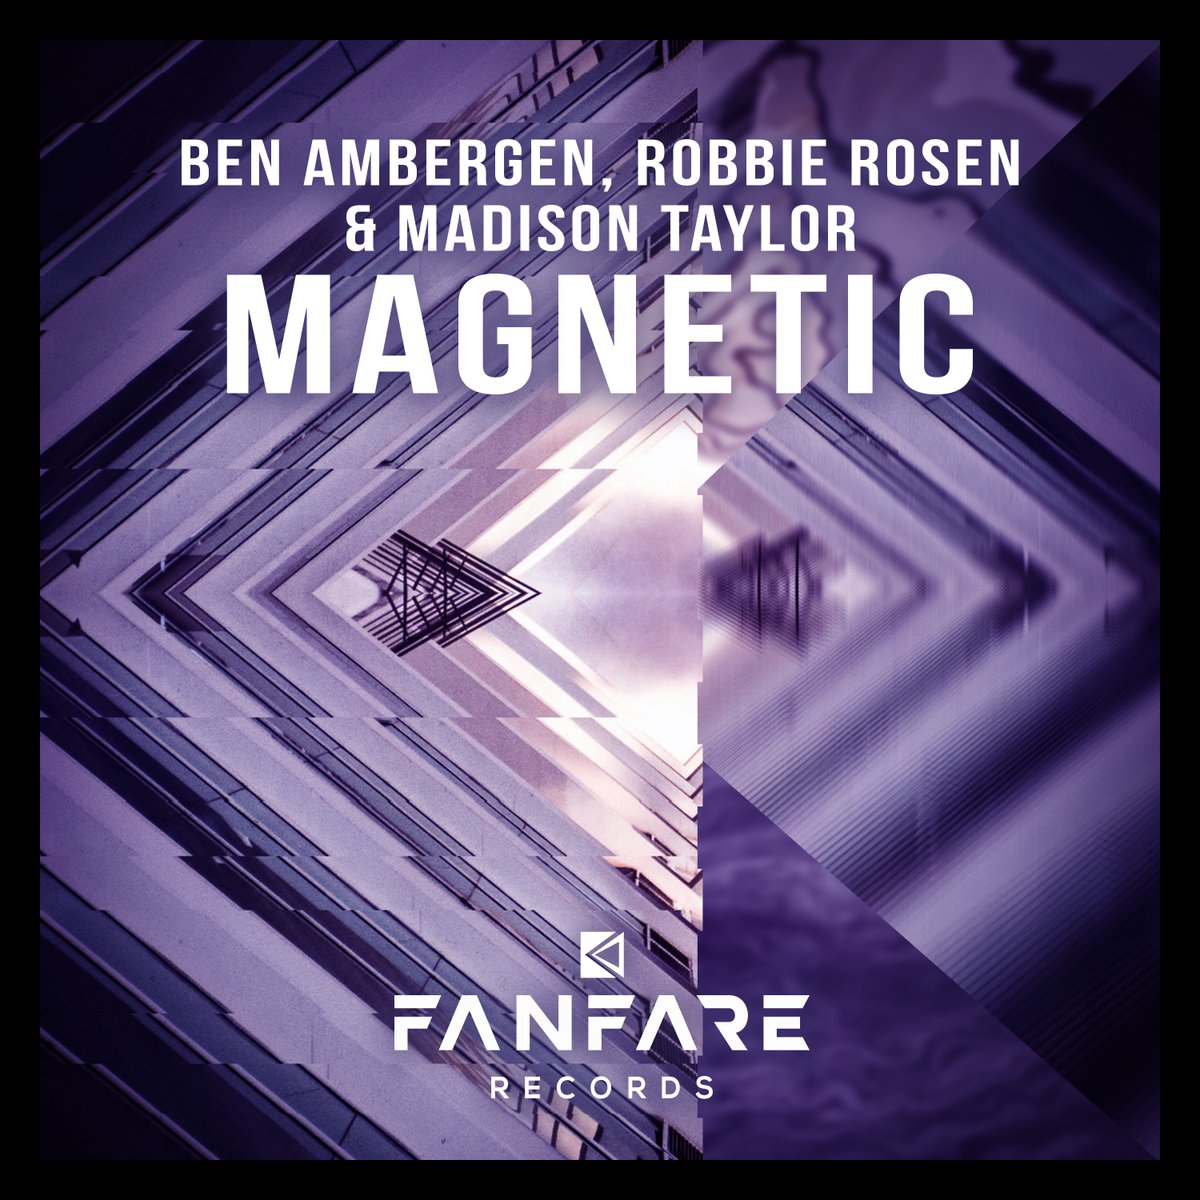 Out tomorrow!! @BenAmbergen @robbierosenlive #MadisonTaylor https://t.co/vE1Hr1wKTh